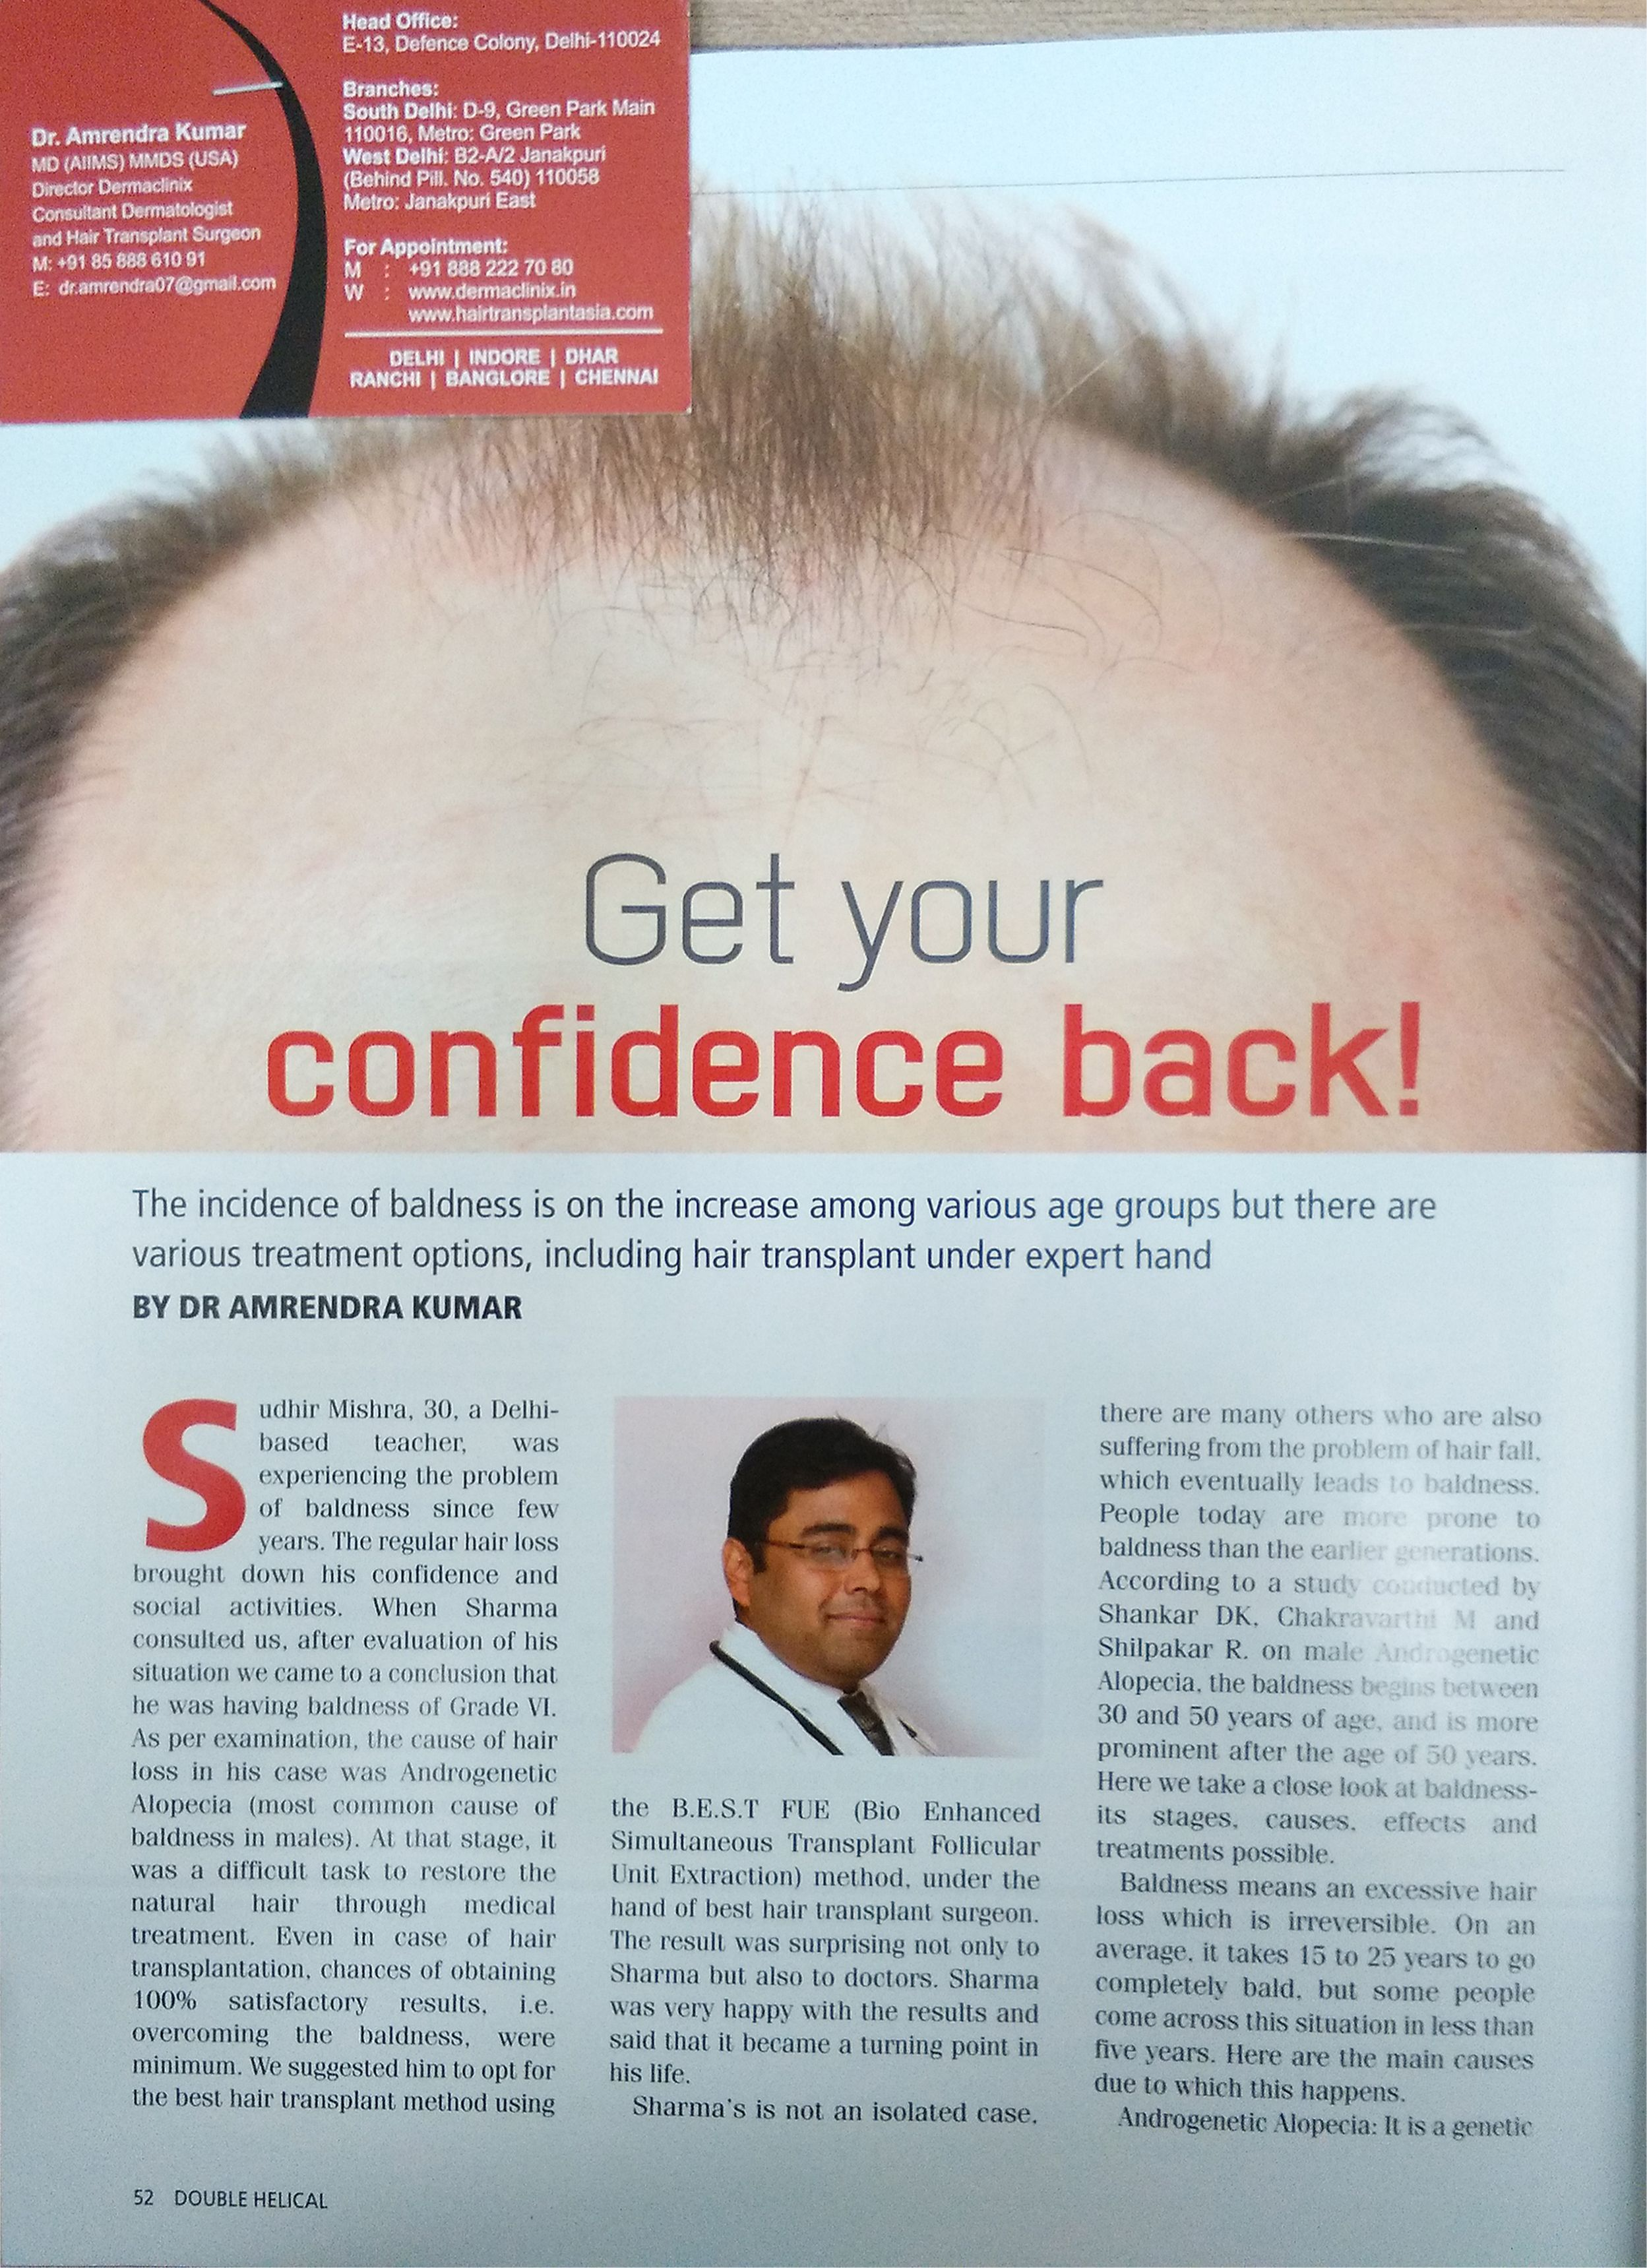 Are You Looking For The Best Hair Transplant Clinic In Bhubaneswar Aesthetica Clinics Is One Of The Best In 2020 Hair Transplant Best Hair Transplant Cool Hairstyles